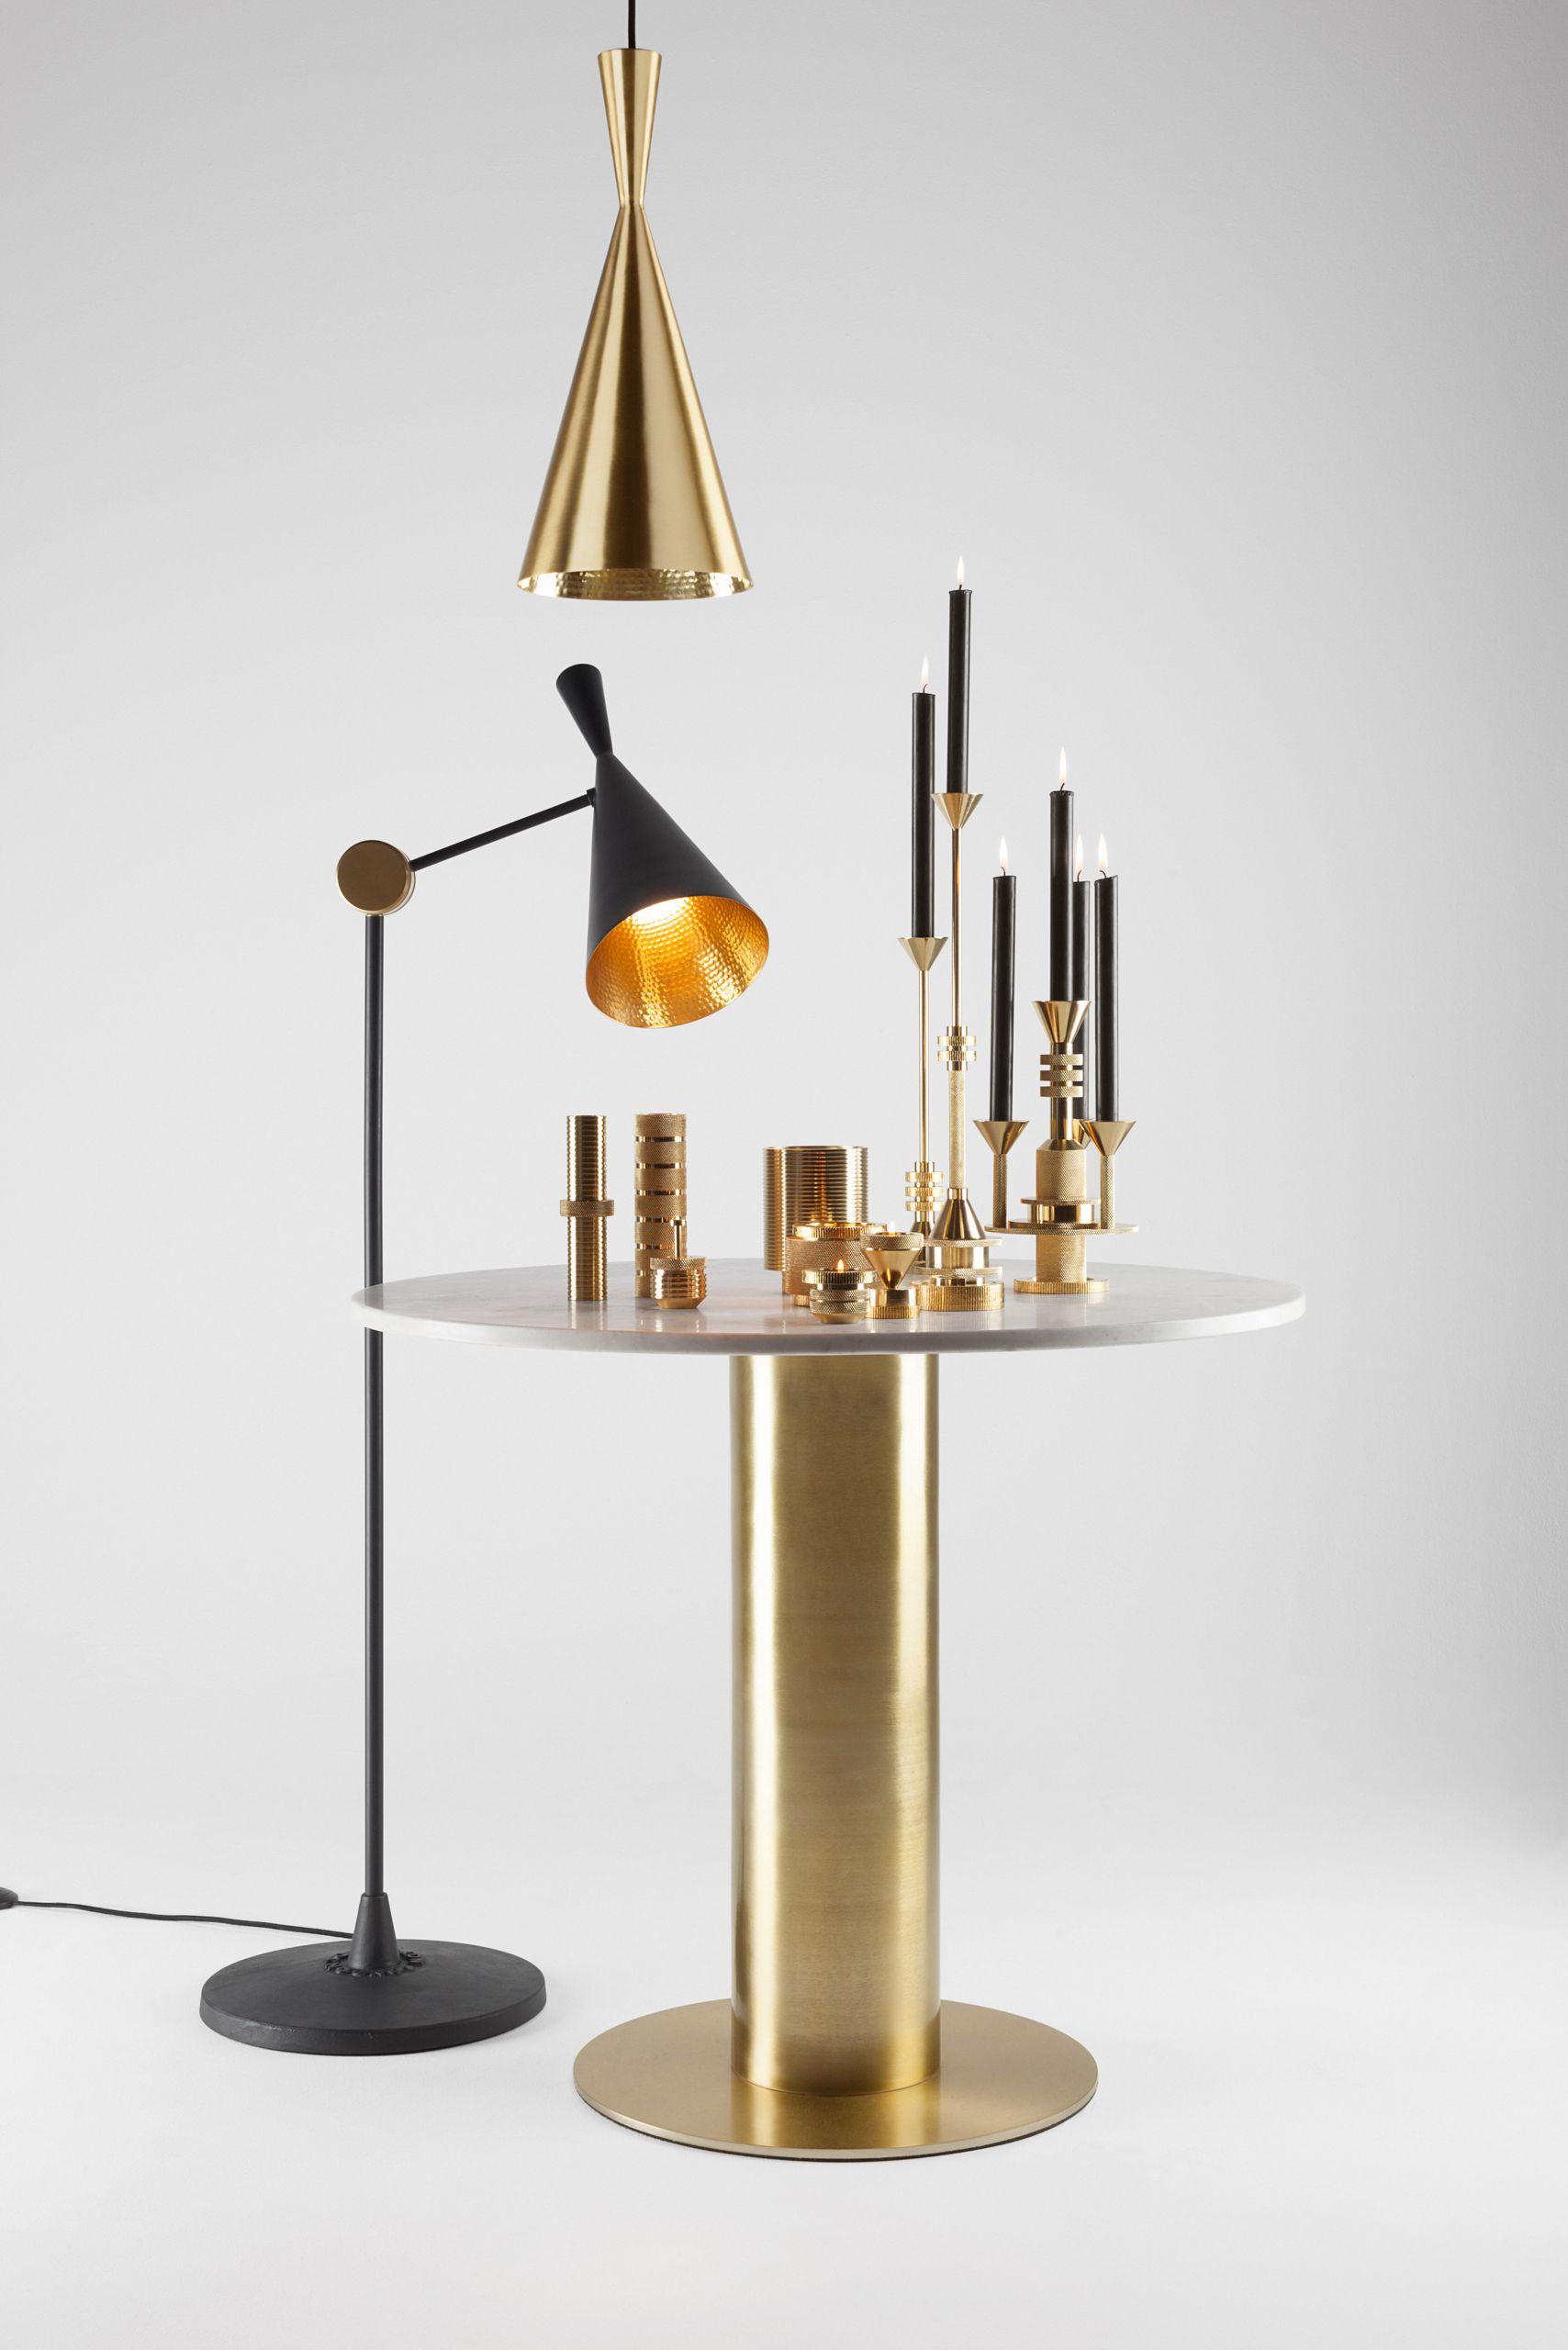 Cog And Beat By Tom Dixon More Brass Design From Tom Dixon Photography By Peer Lindgreen Tom Dixon Floor Table Lamps Black Floor Lamp